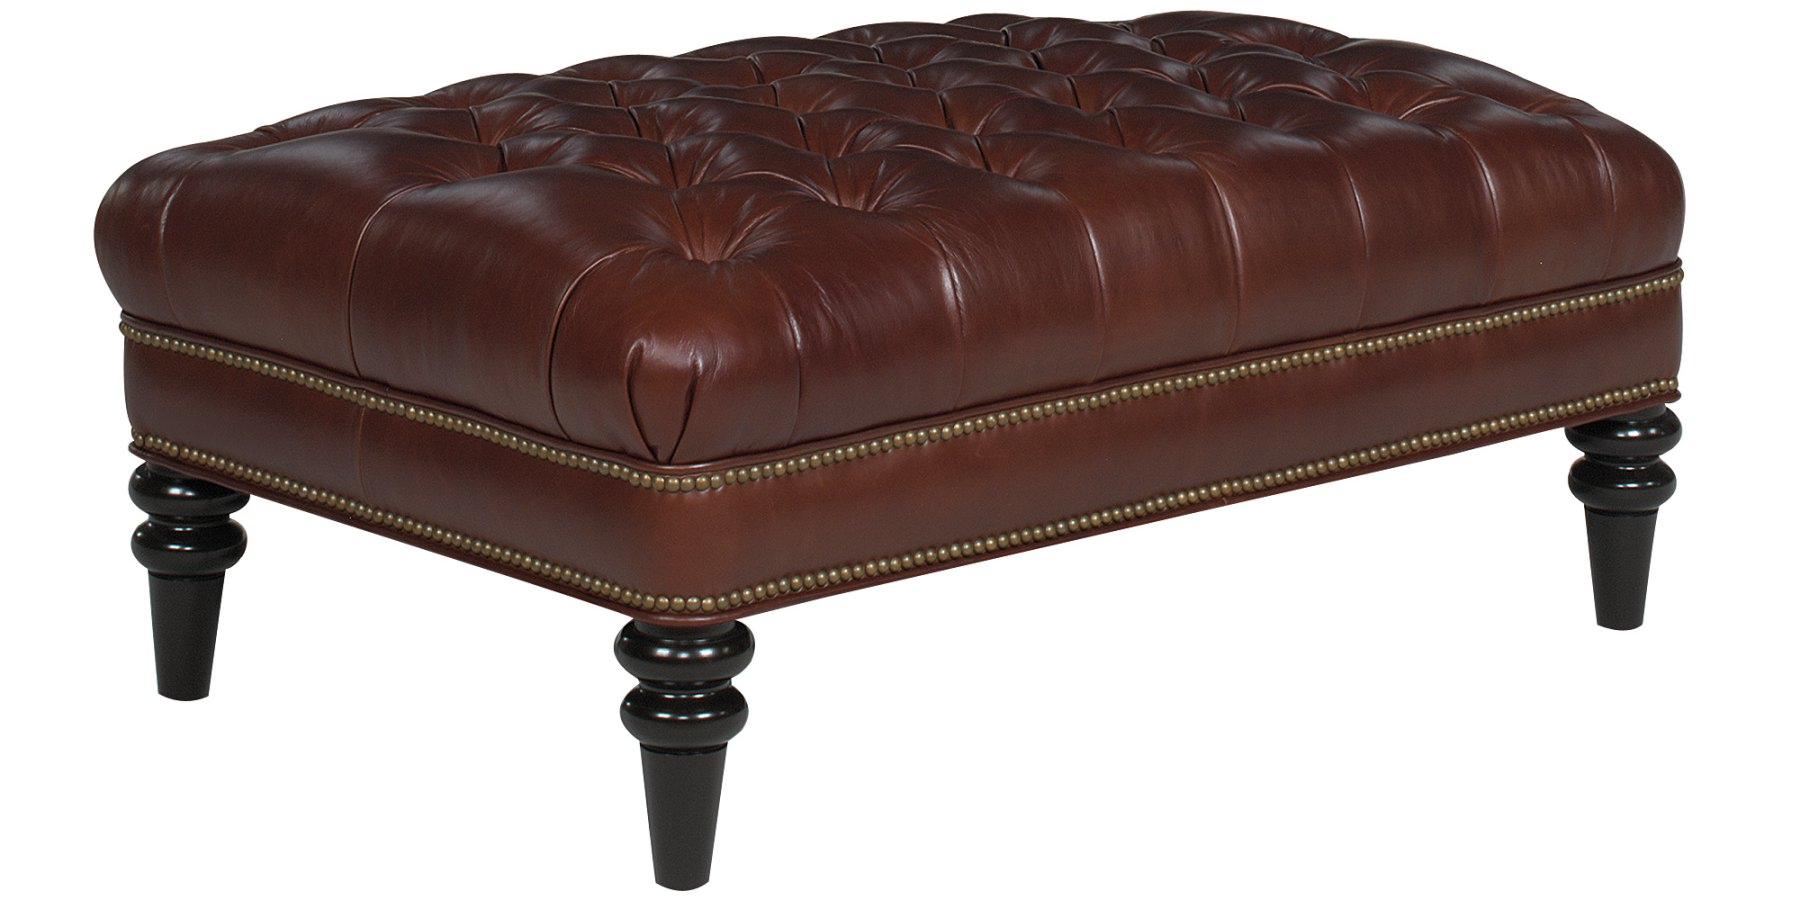 Upholstered Tufted Bench Coffee Table With Nailhead Trim Club Furniture